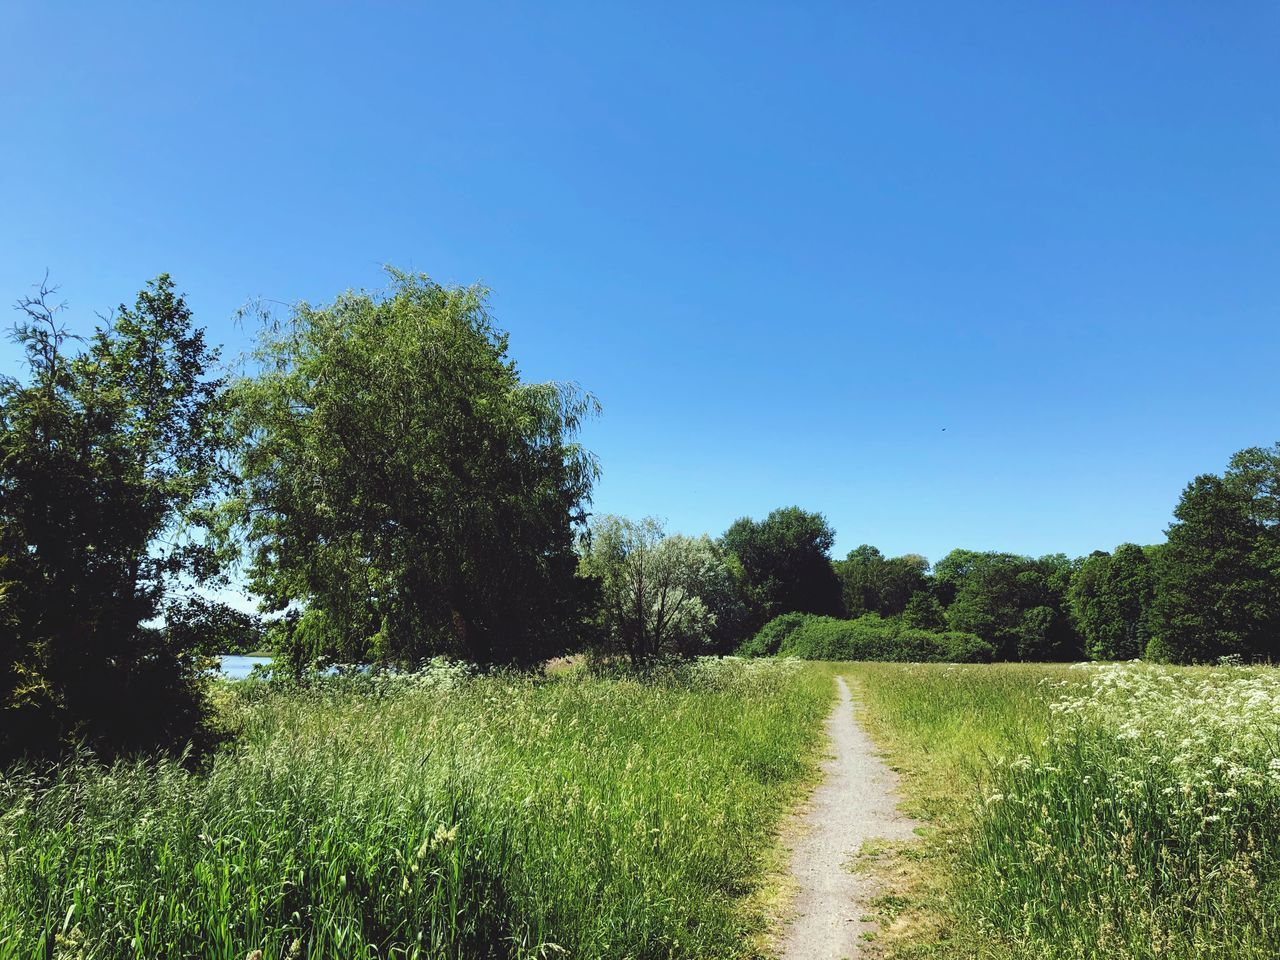 plant, tree, sky, growth, clear sky, tranquility, grass, nature, field, land, tranquil scene, beauty in nature, landscape, environment, the way forward, blue, green color, direction, day, no people, outdoors, trail